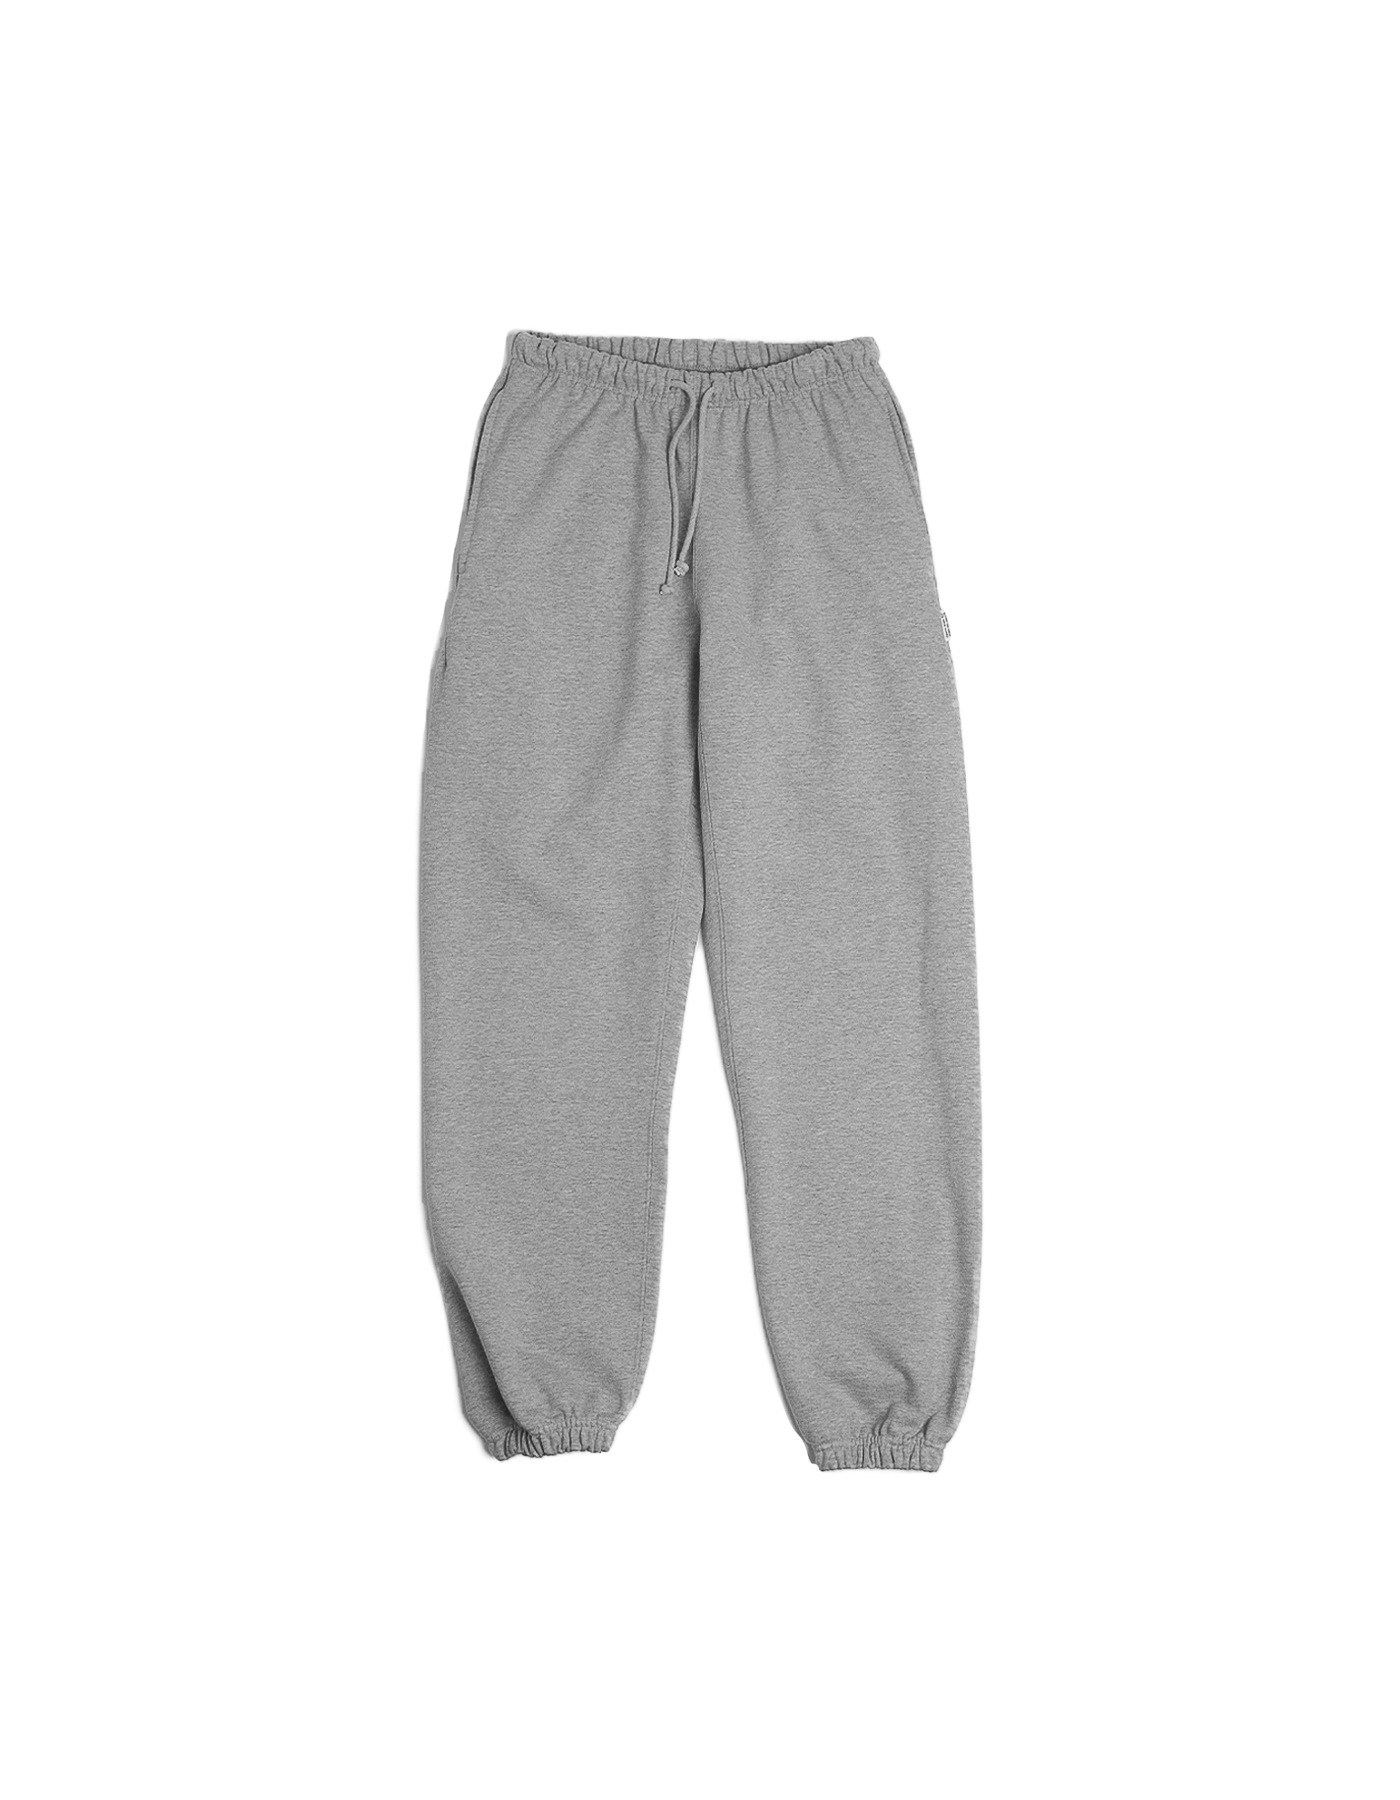 FRED OG SWEATPANTS / M.GREY